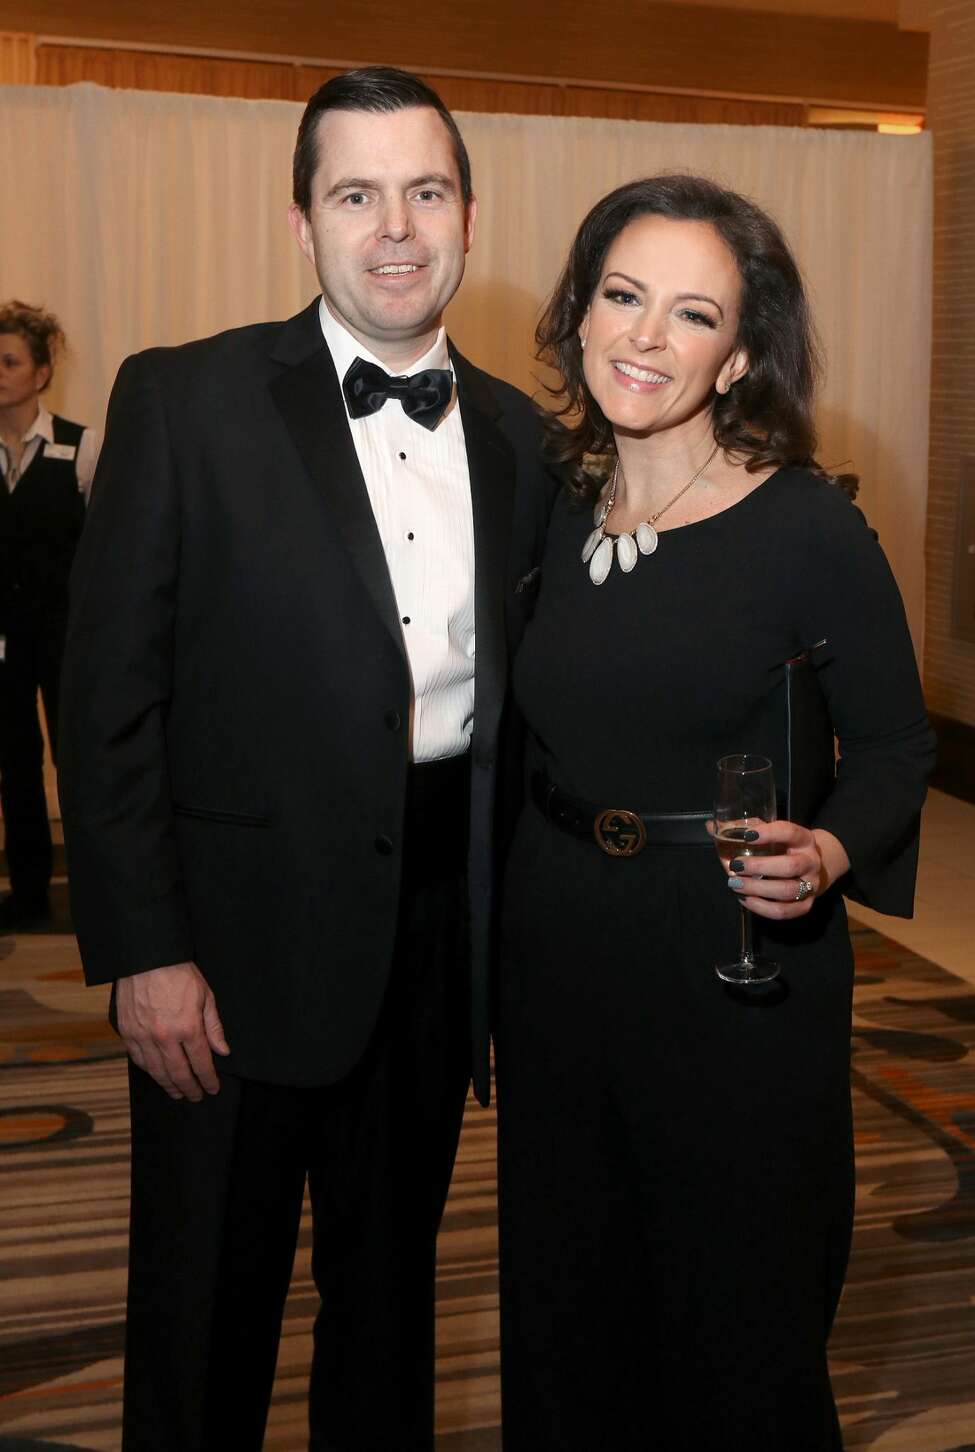 Were you Seen at the Ellis Medicine Winter Gala honoring Dr. Richard and Valerie Brooks, to benefit programs and services at Ellis Medicine, at Rivers Casino and Resort in Schenectady on Saturday, January 25th, 2020?